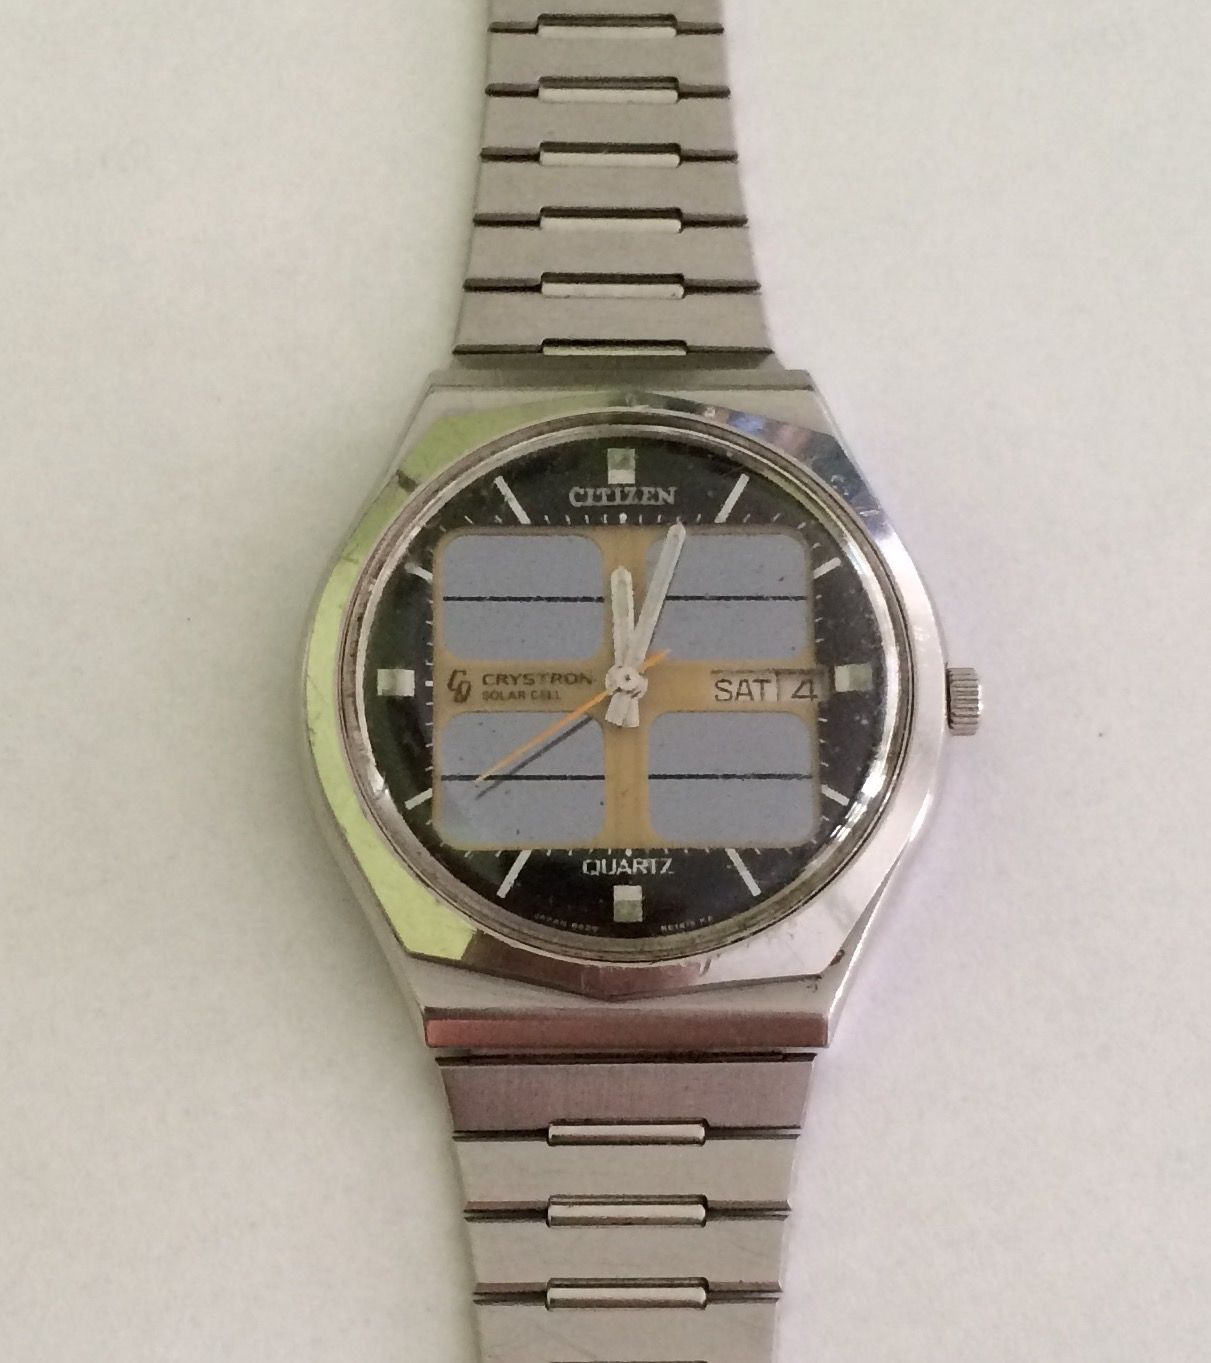 Citizen Crystron Solar Cell 1976 Vintage Watches In